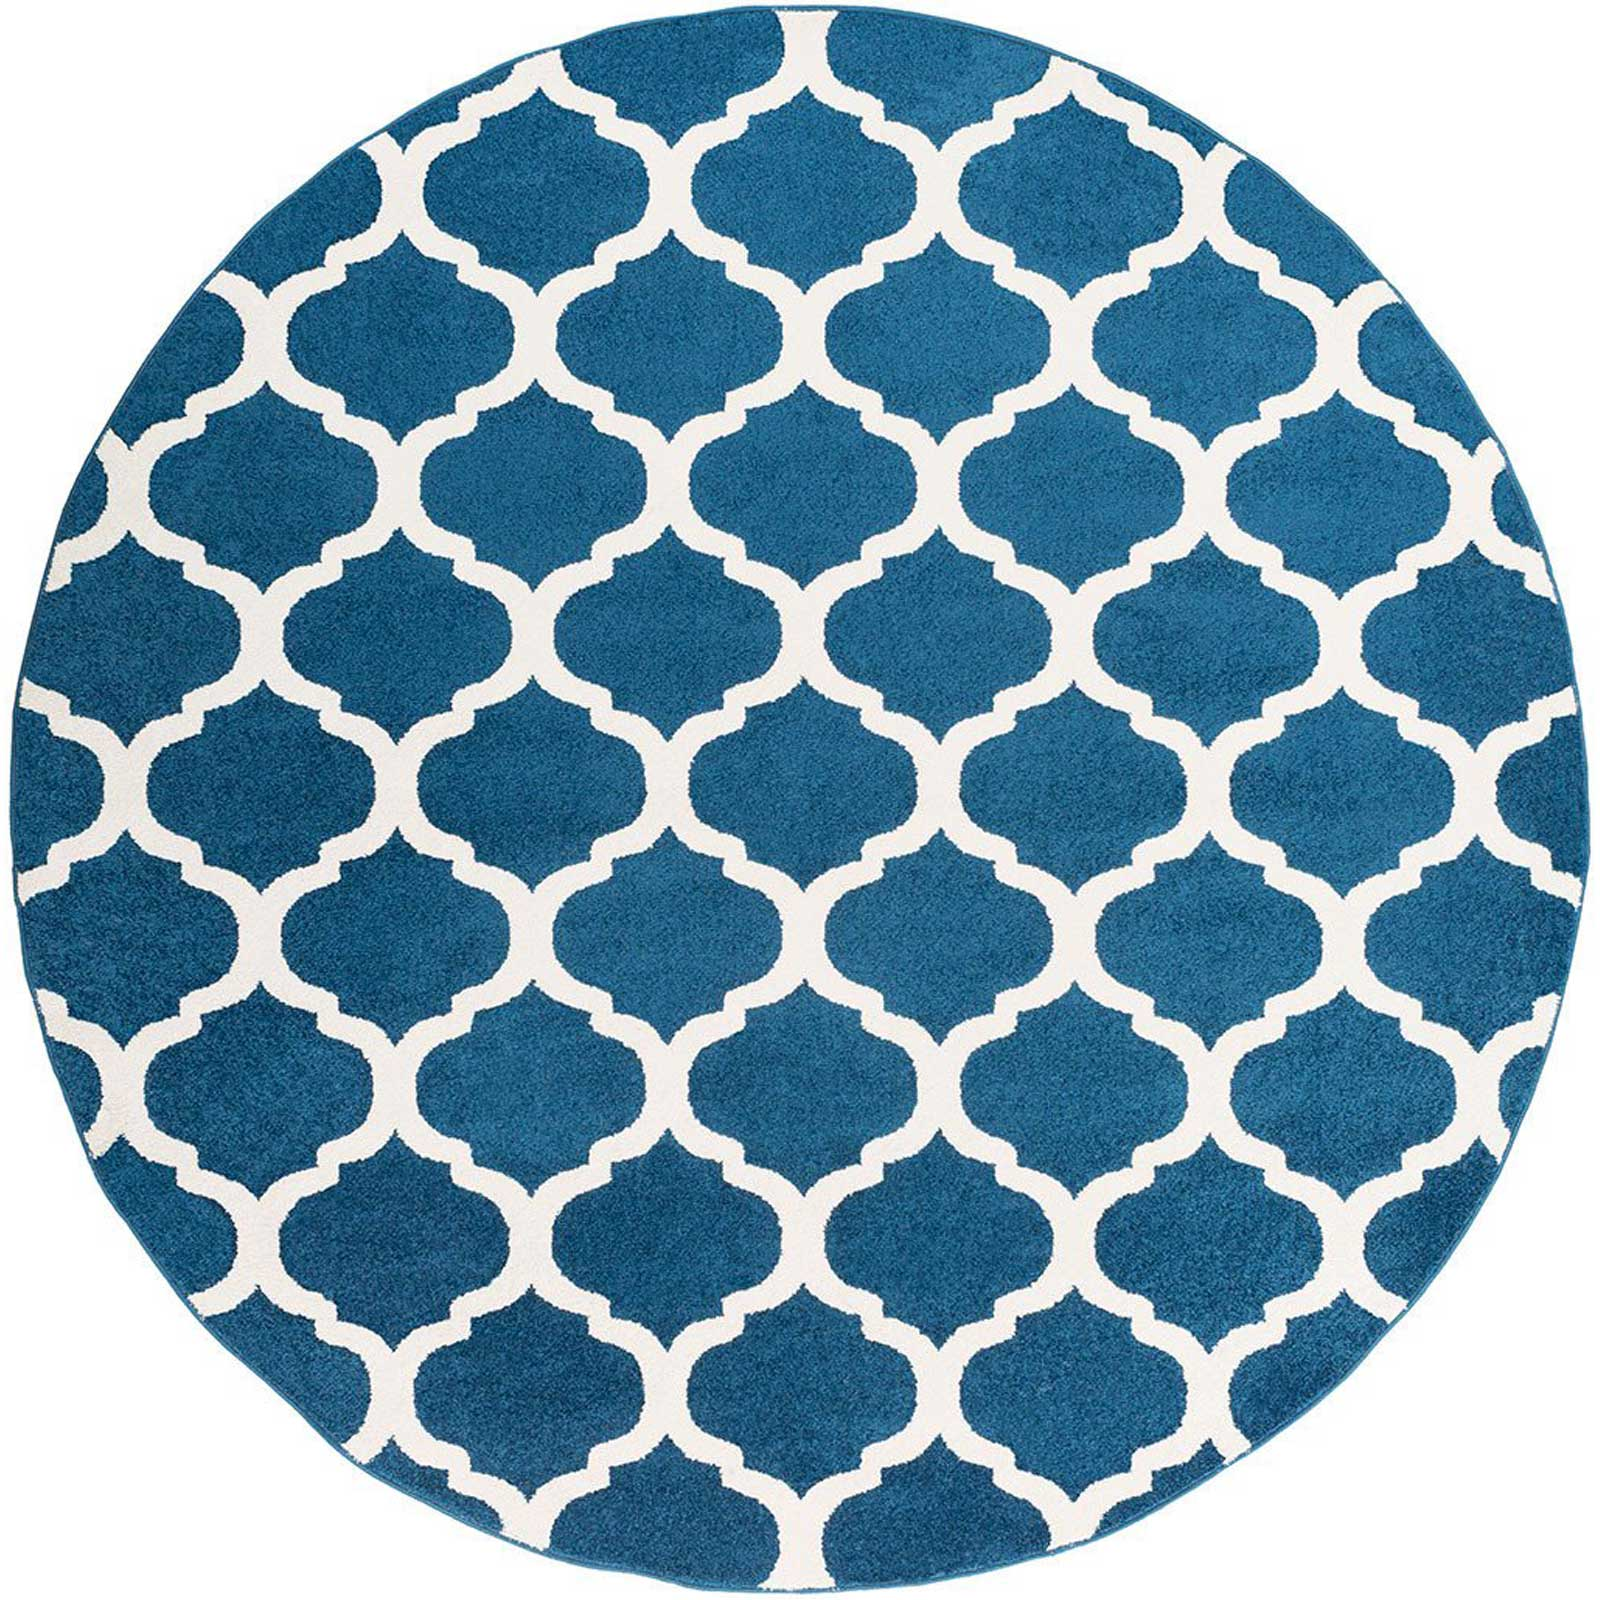 Horizon Lattice Cobalt/Ivory Round Rug